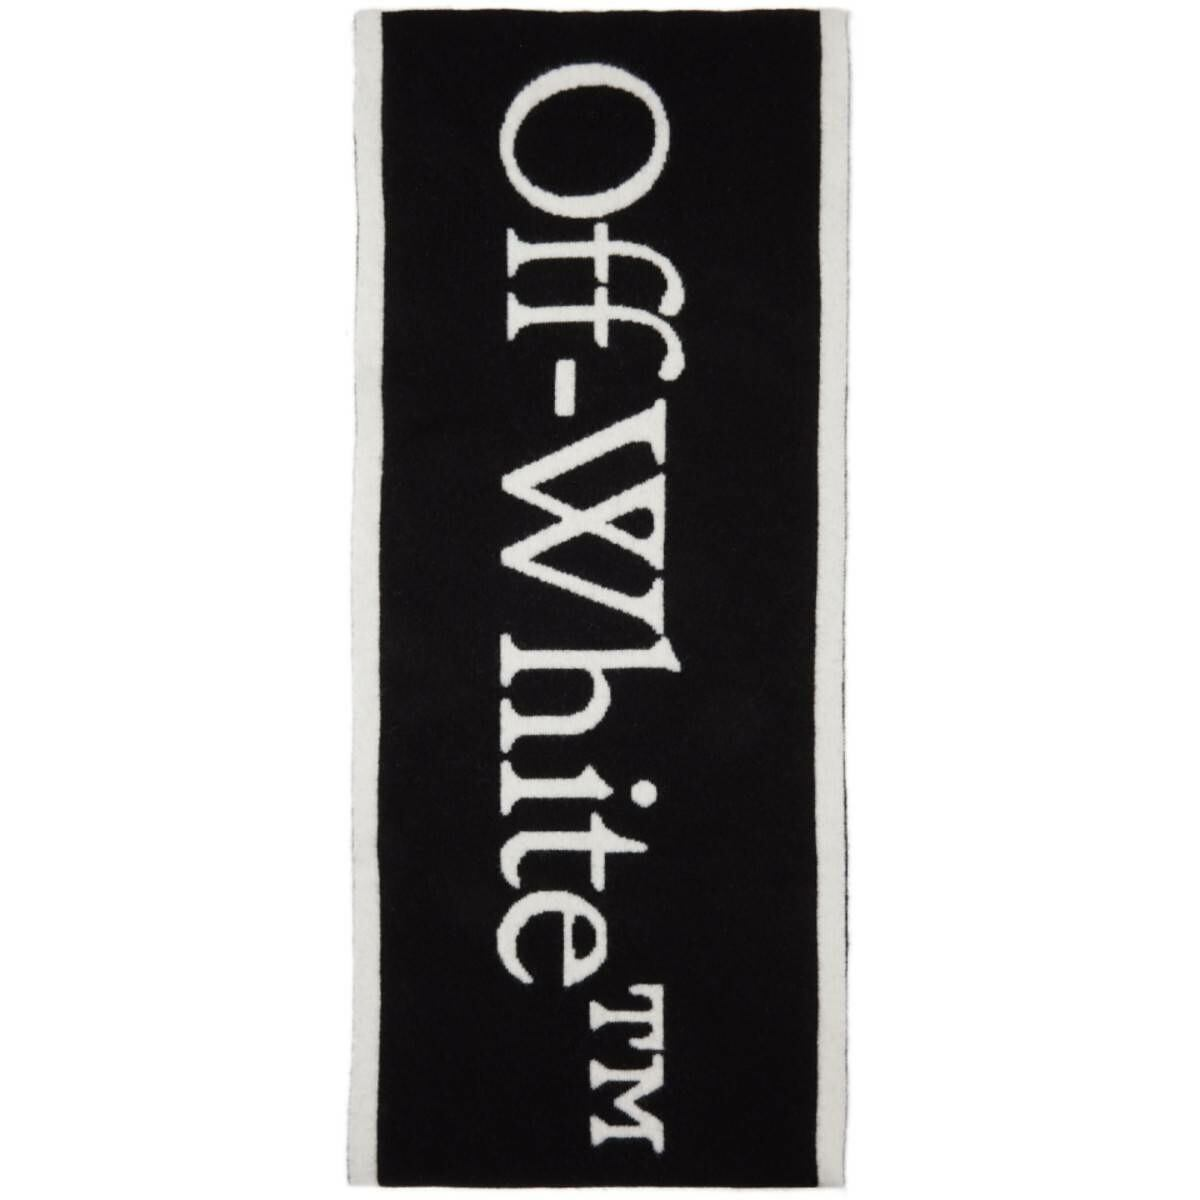 Off-White Black and White Felted Wool New Logo Scarf Ssense USA MEN Men ACCESSORIES Mens SCARFS